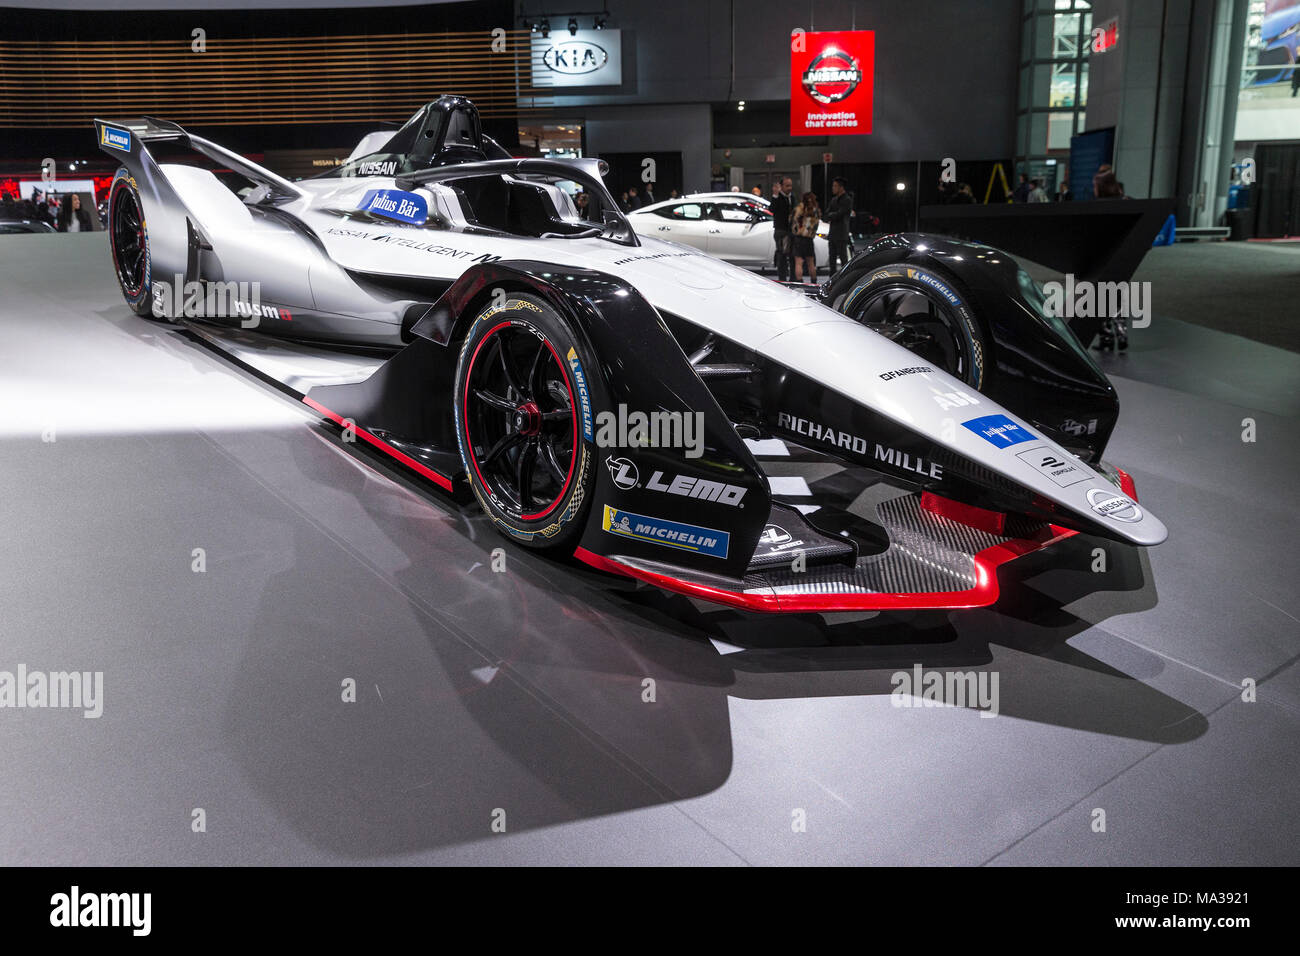 Nissan Race Car Formula E On Display In Nissan Pavilion At New - Pavilions car show